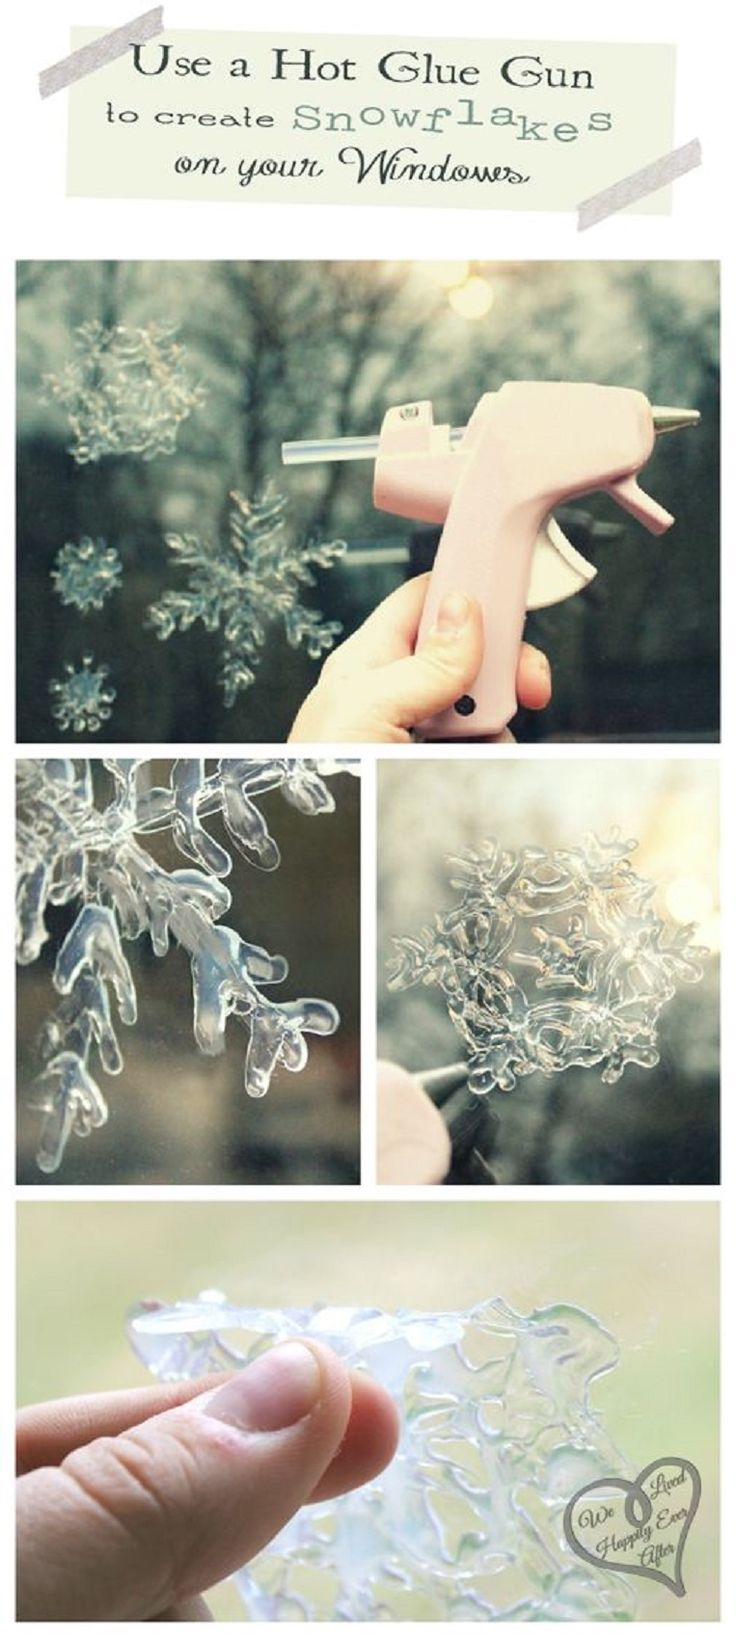 Hot Glue Snowflakes for Your Windows – 15 Beautiful DIY Snowflake Decorations for